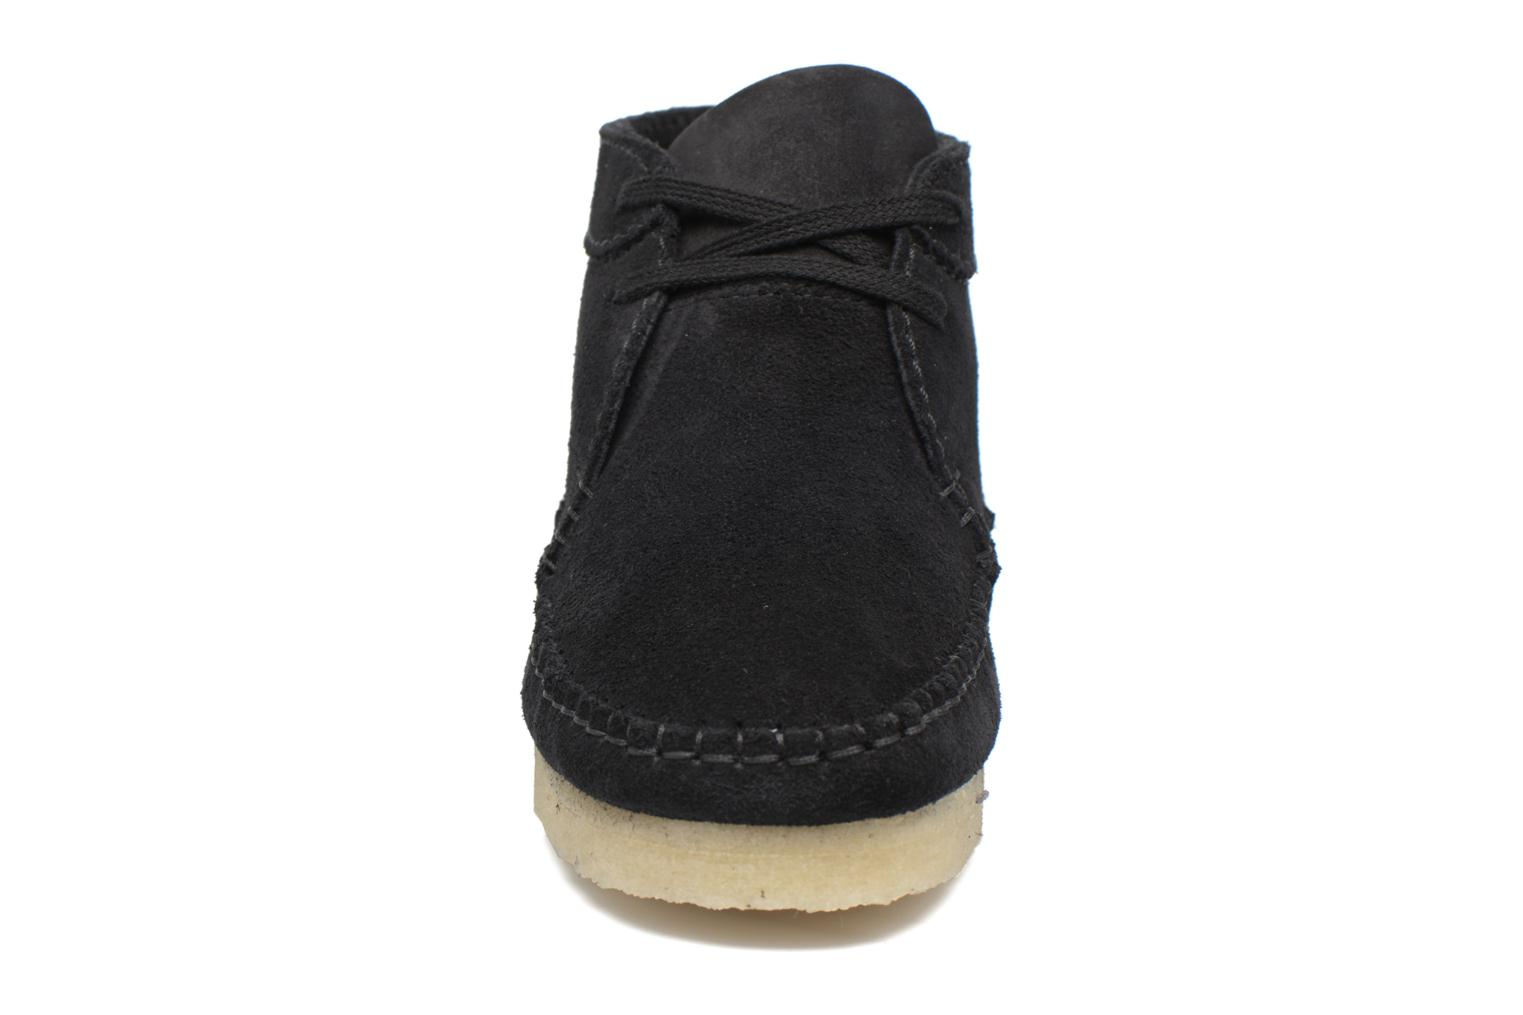 WEAVER BOOT W Black sde